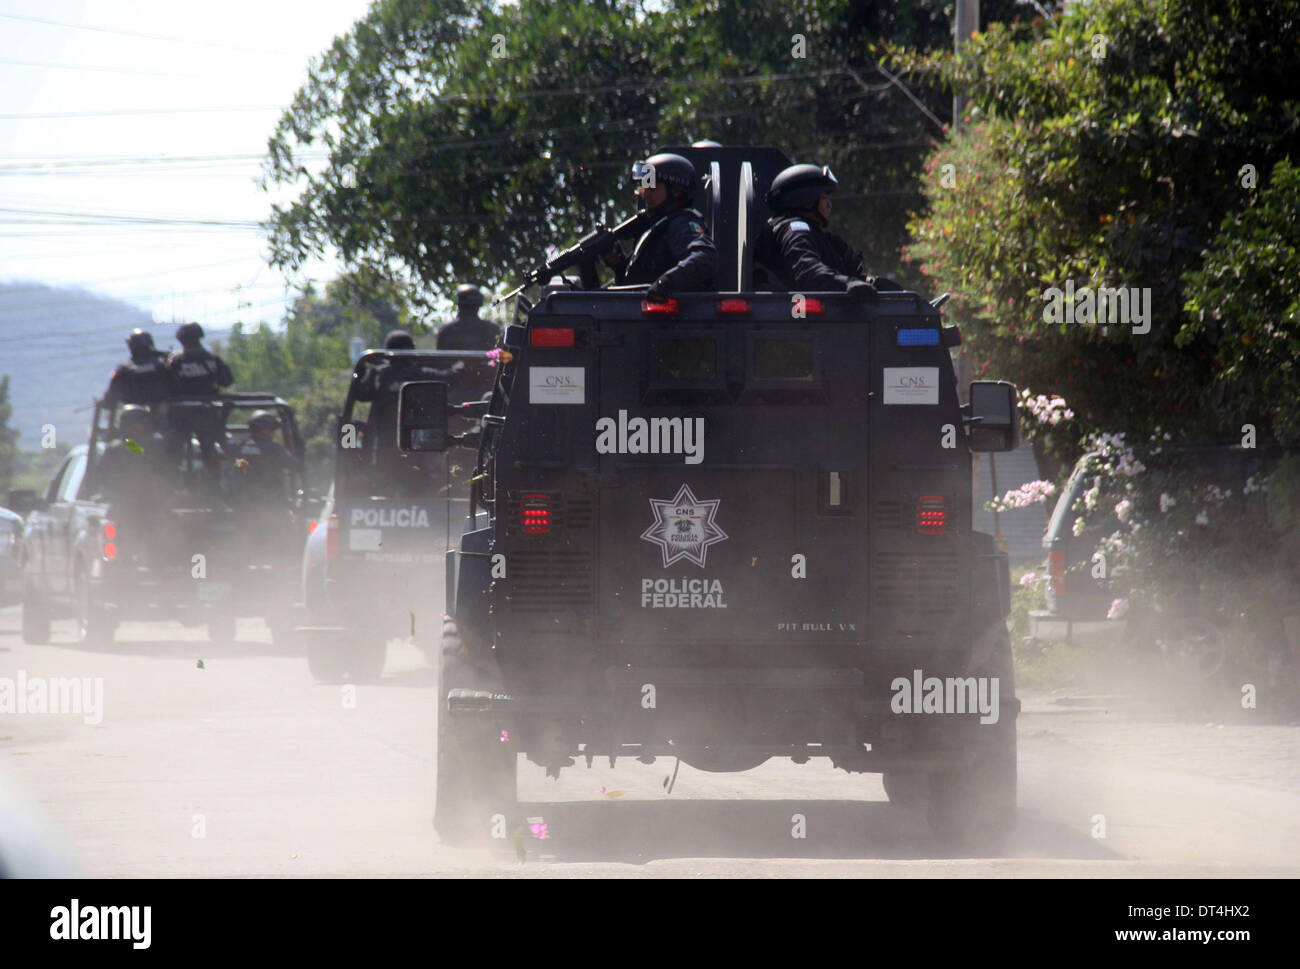 Michoacan, Mexico. 8th Feb, 2014. Federal Police officers enter the municipality of Apatzingan, in Michoacan, Mexico, on Feb. 8, 2014. Members of self-defense groups entered Apatzingan on Saturday accompanied by the Mexican Army and Federal Police to take control of the town that has been affected by the actions of the criminal organization 'Los Caballeros Templarios', according to the local press. © Armando Solis/Xinhua/Alamy Live News - Stock Image